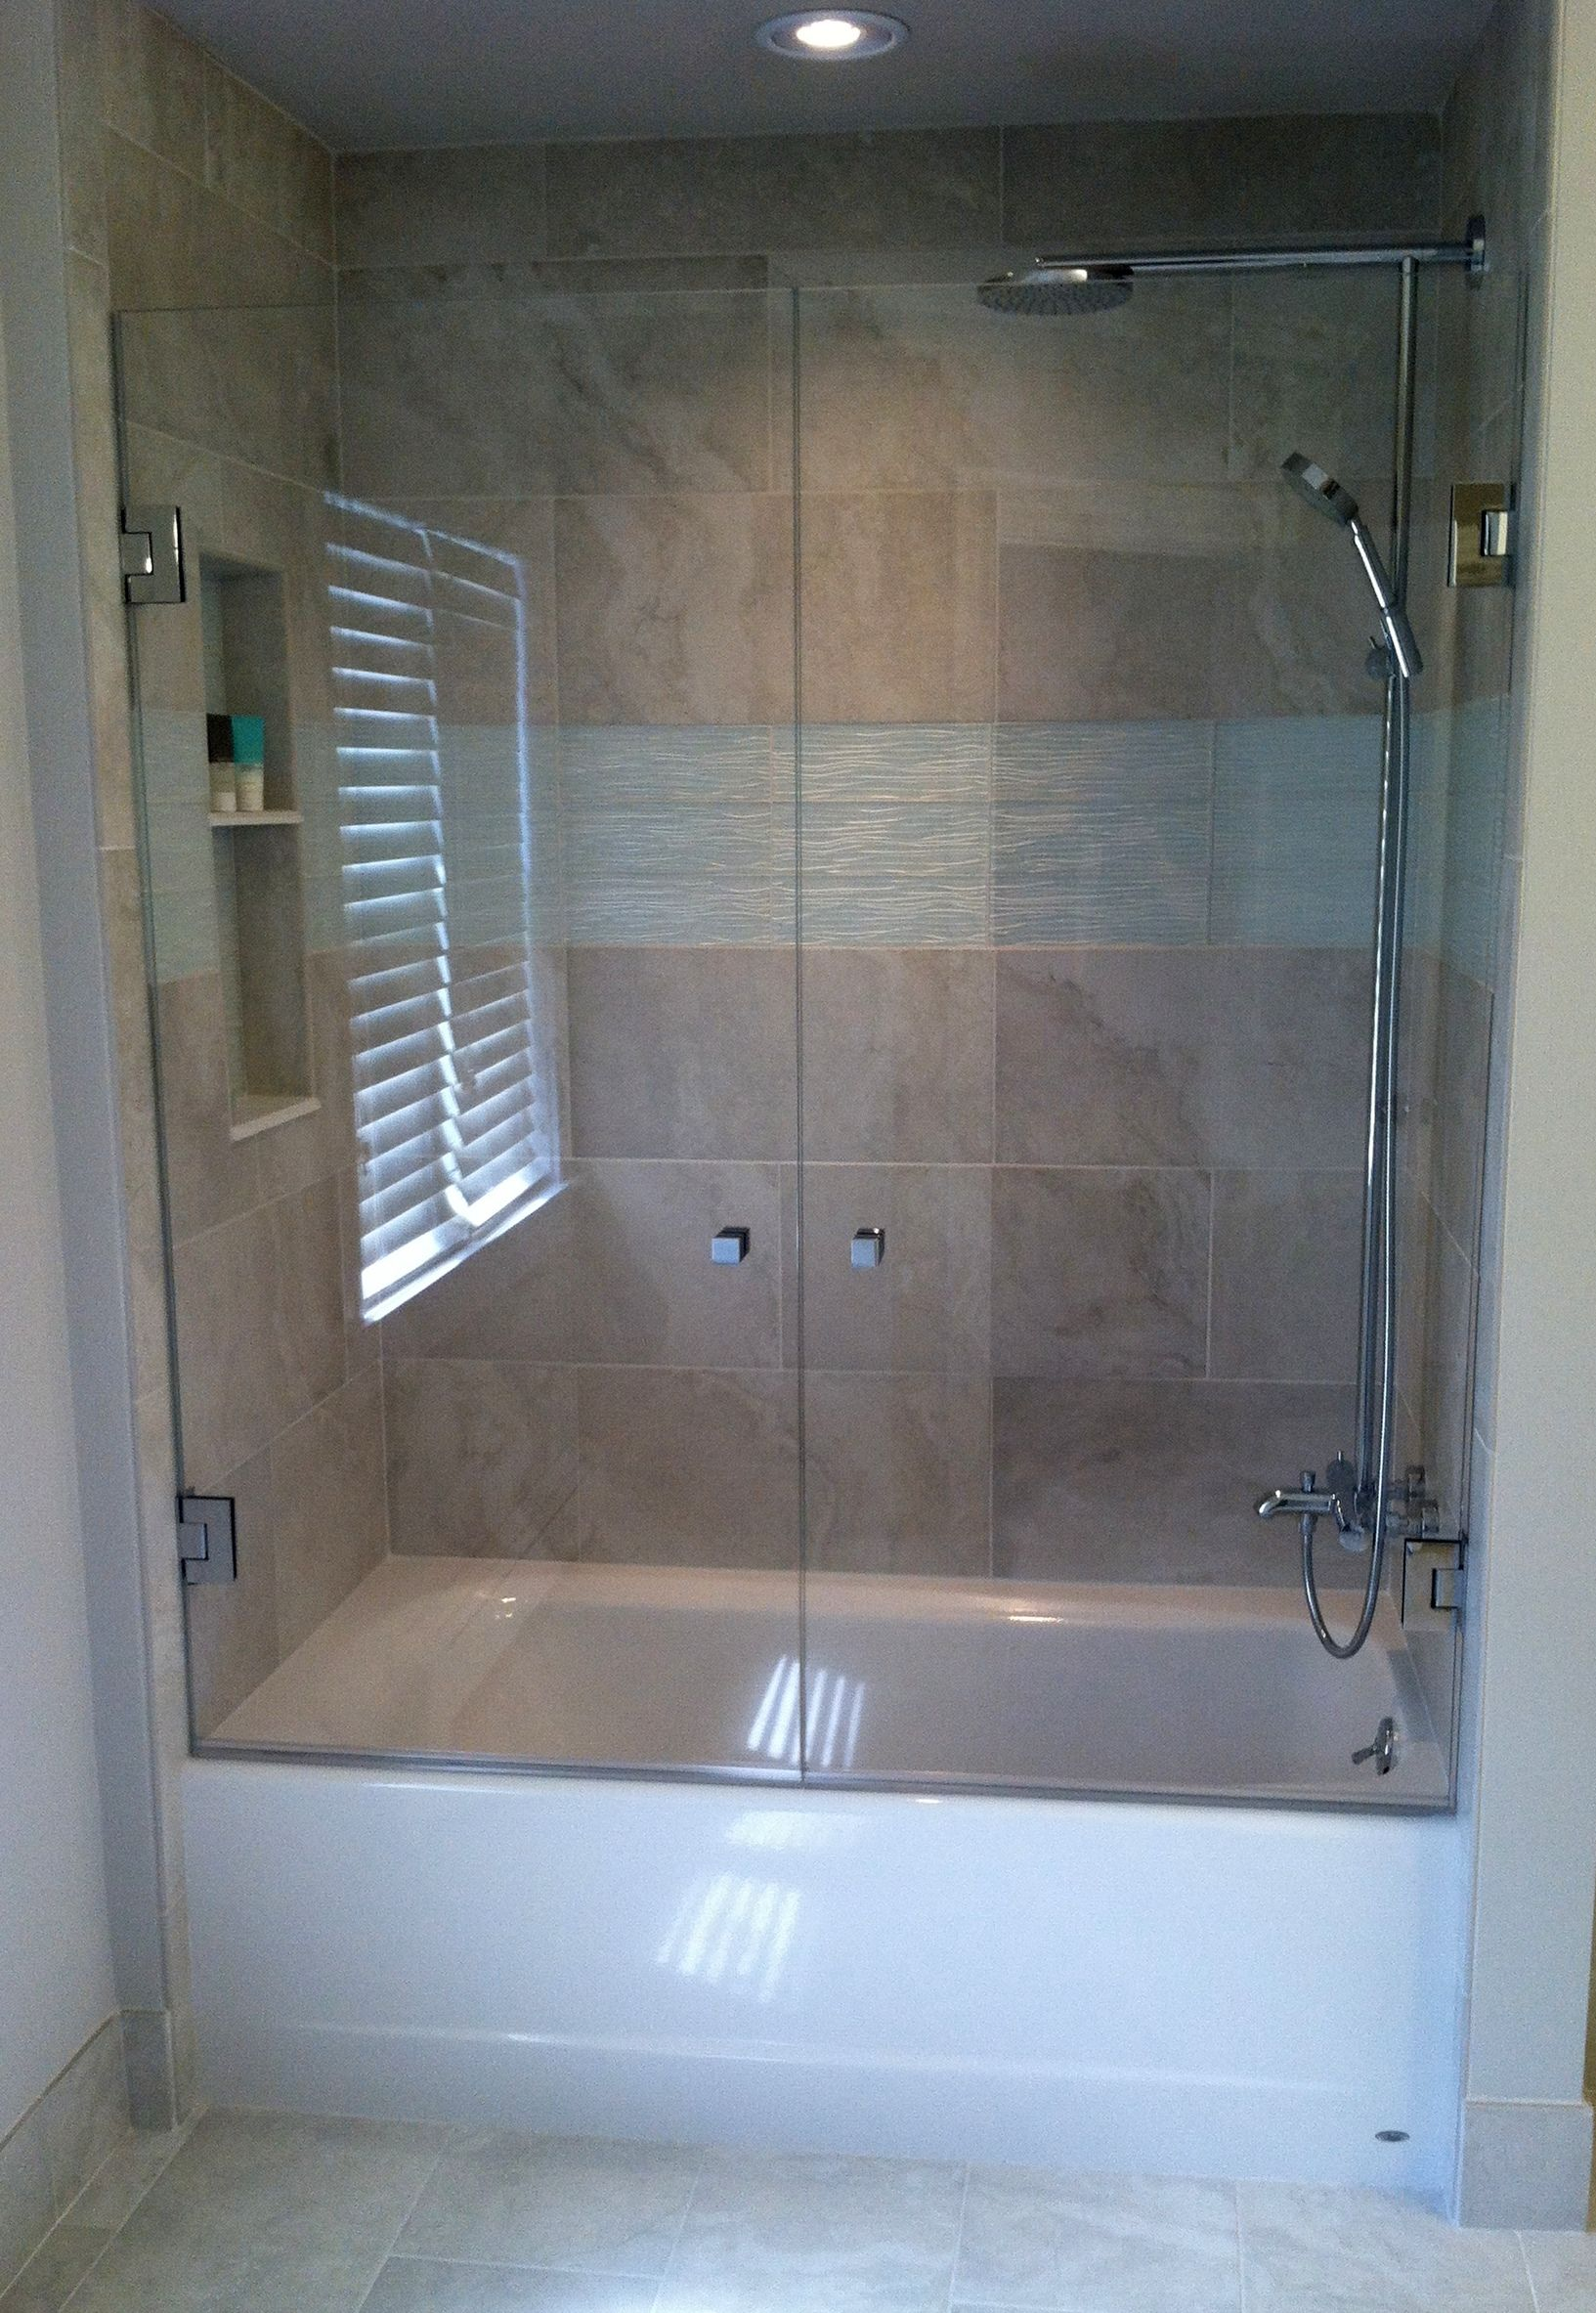 French Shower Doors Mount A Swing Door On Each Wall To Open Up Your Bathtub Space Bathtub Shower Doors Tub With Glass Door Tub Shower Doors